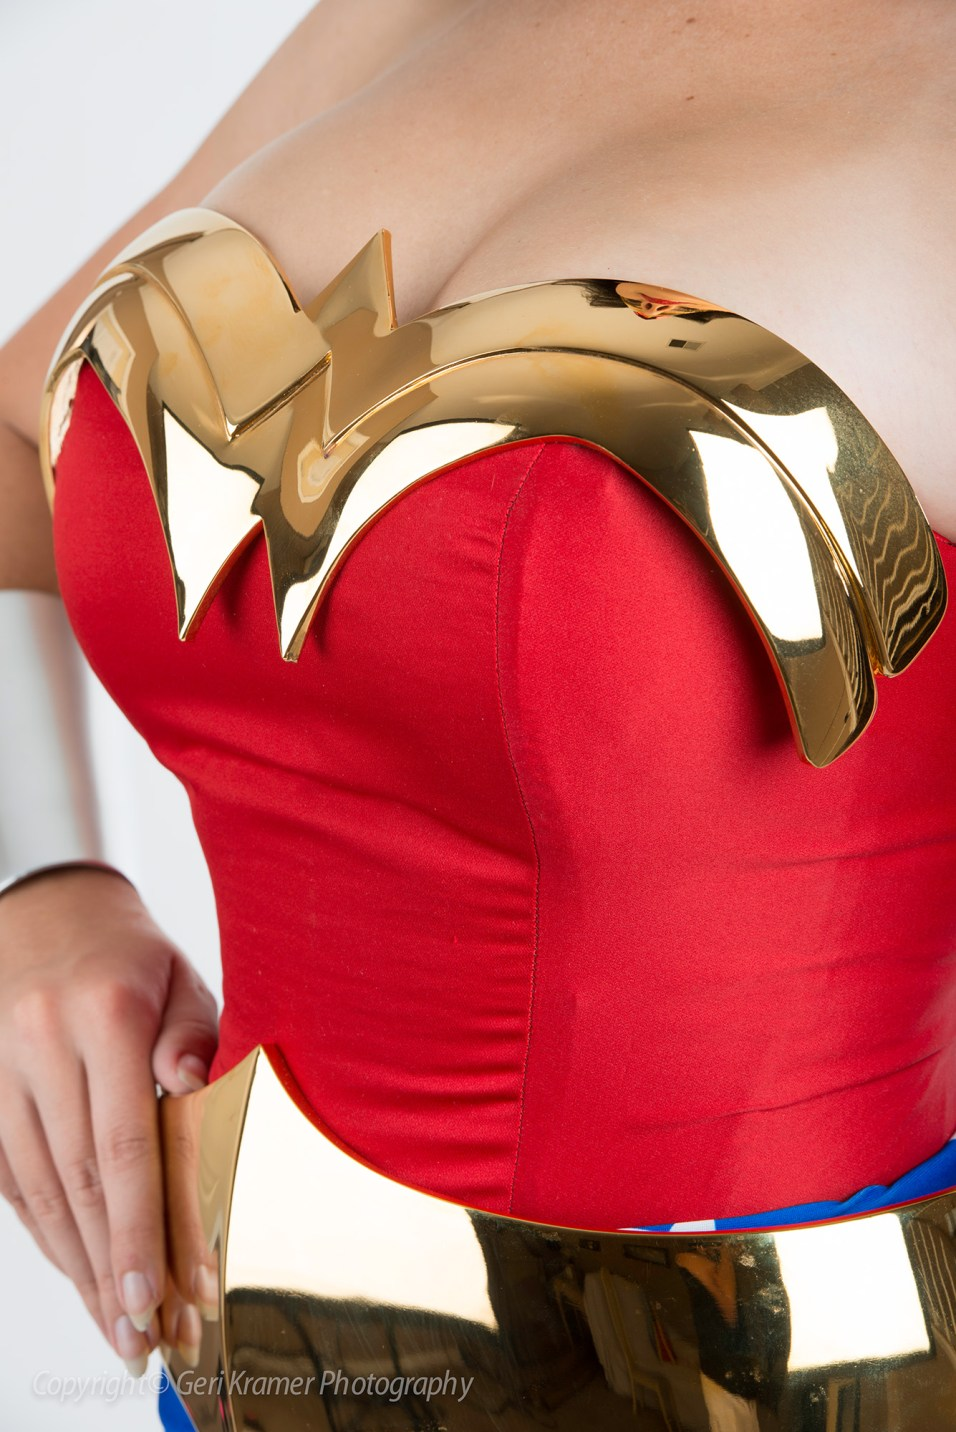 Wonder_Woman-Geri_Kramer (6)